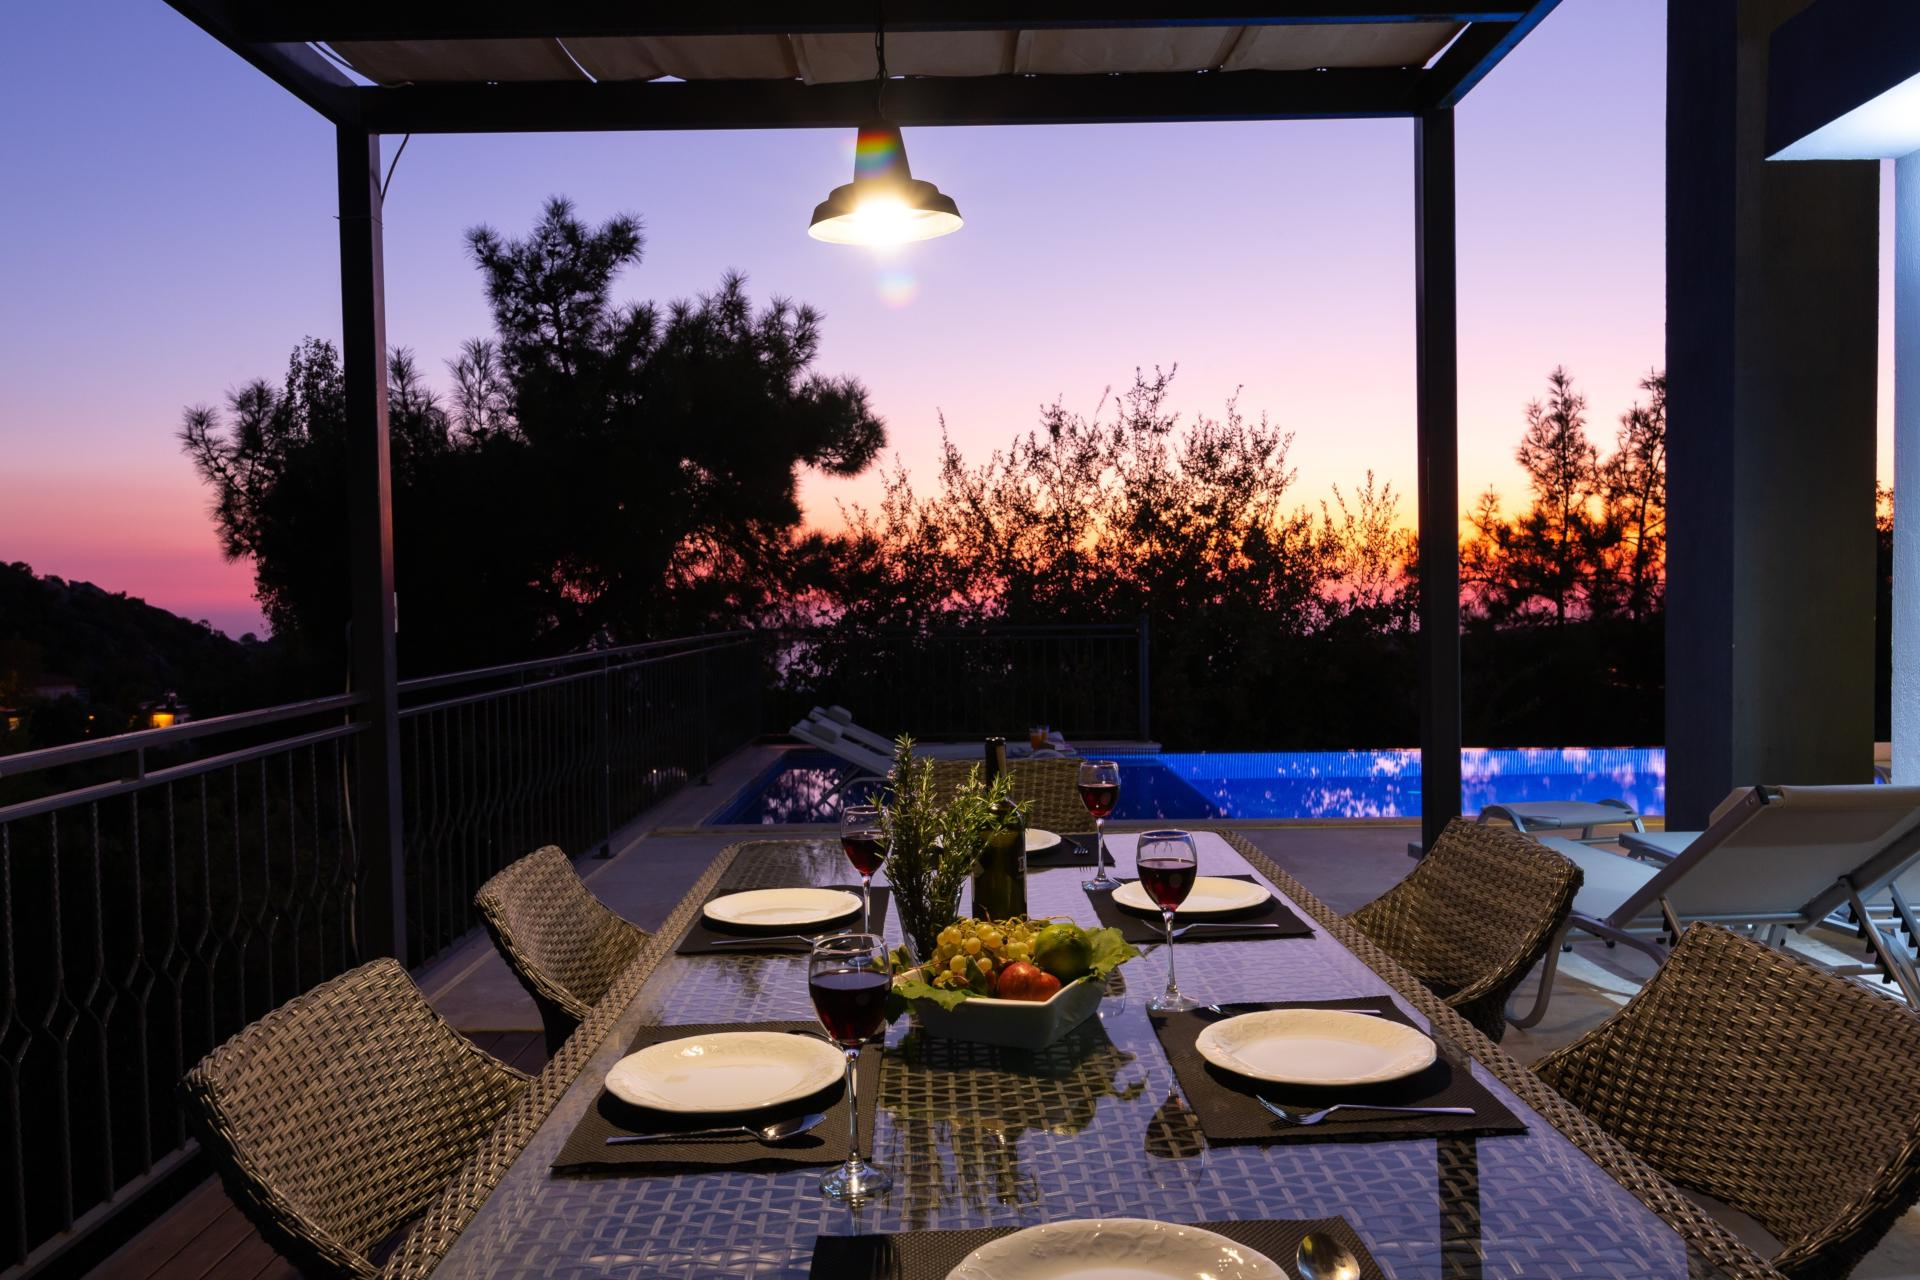 Experience the stunning Lycian Coast at the perfectly located villa of Risus